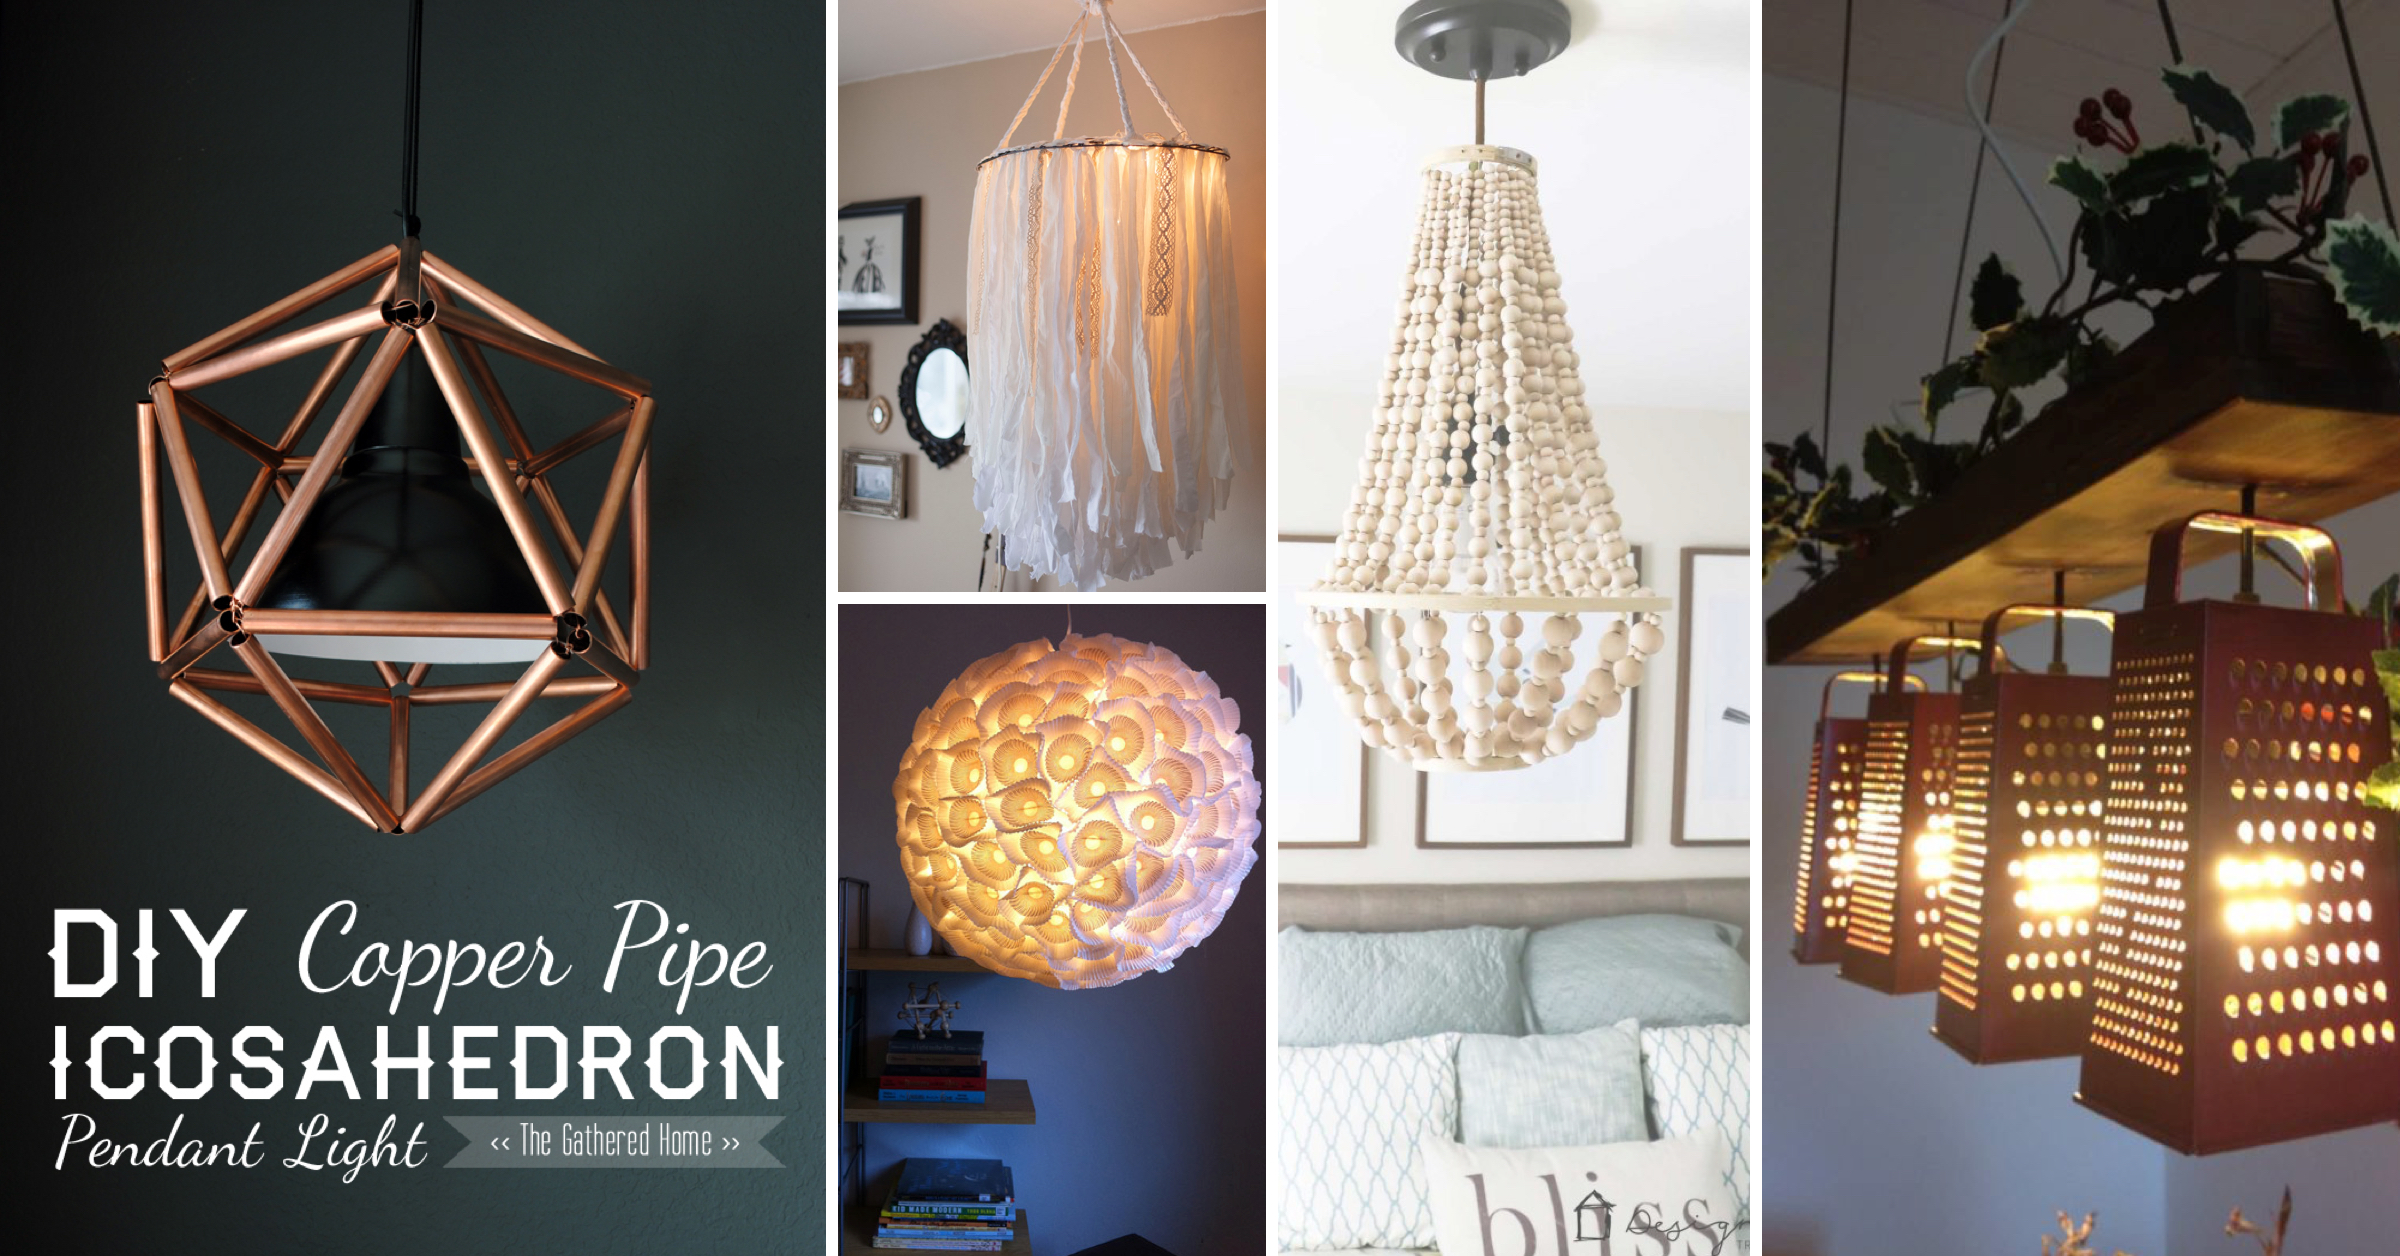 Chandelier Lamp 33 Diy Lamps And Chandeliers Lighting Up Your Home With Glory!